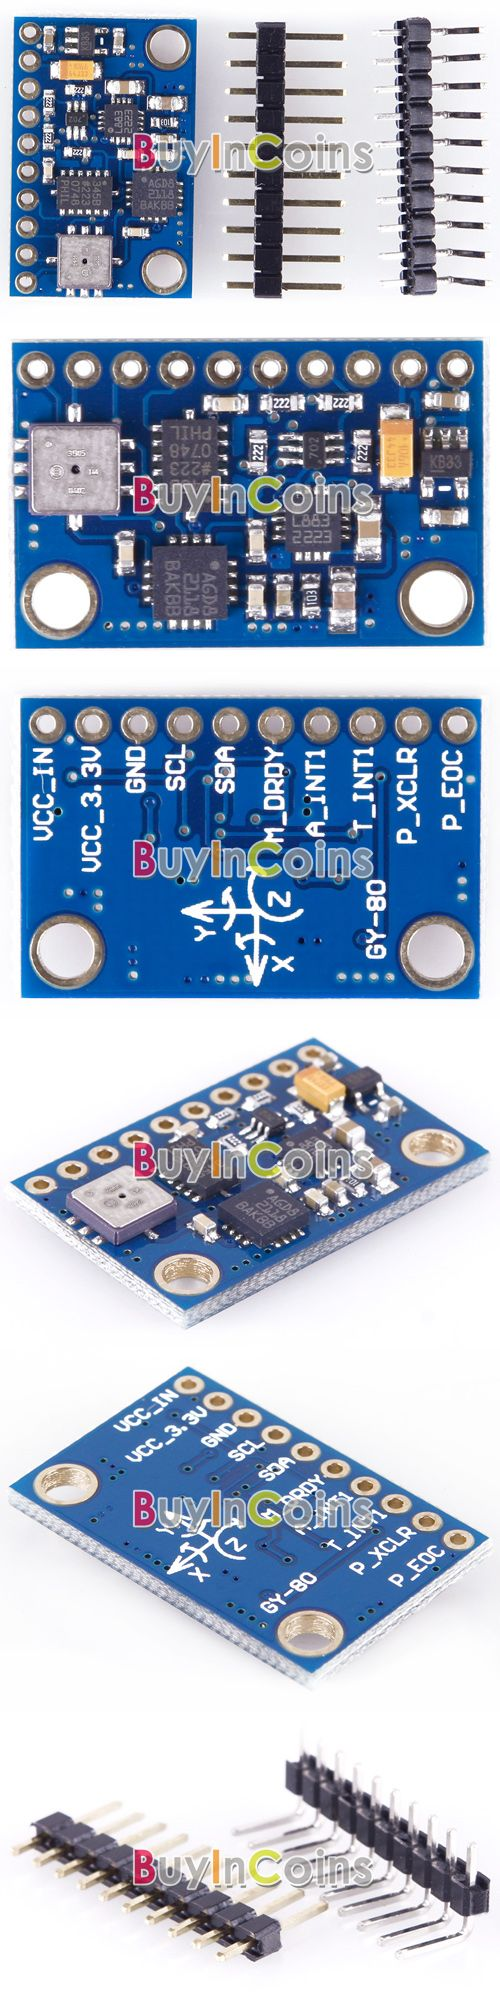 New 10DOF 9-axis Attitude Indicator L3G4200D ADXL345 HMC5883L BMP085 Module -- BuyinCoins.com E 8.11  Versnelling + gyro + magnetic